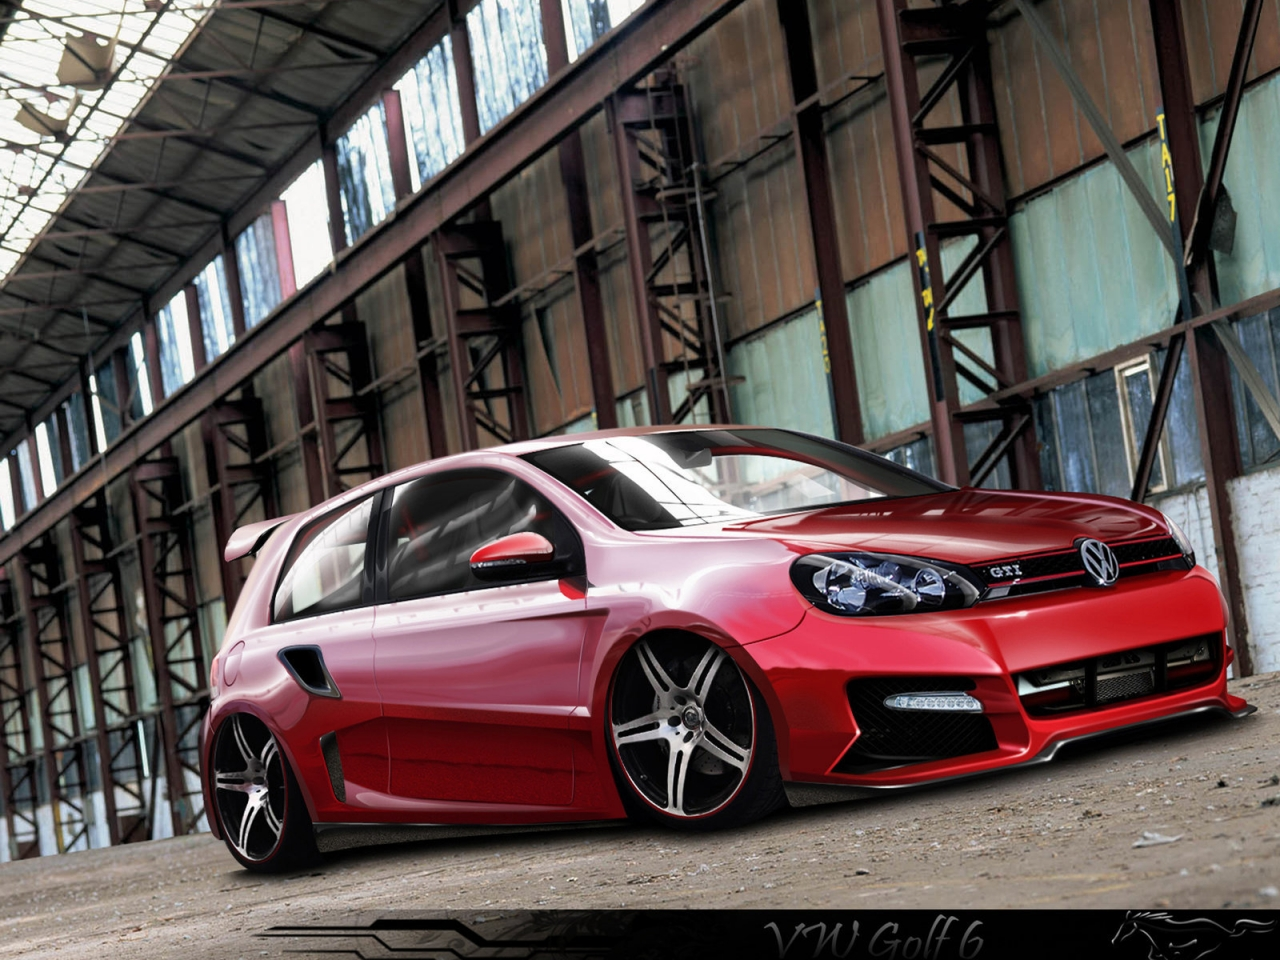 VW Golf 6 GTI Tuning for 1280 x 960 resolution